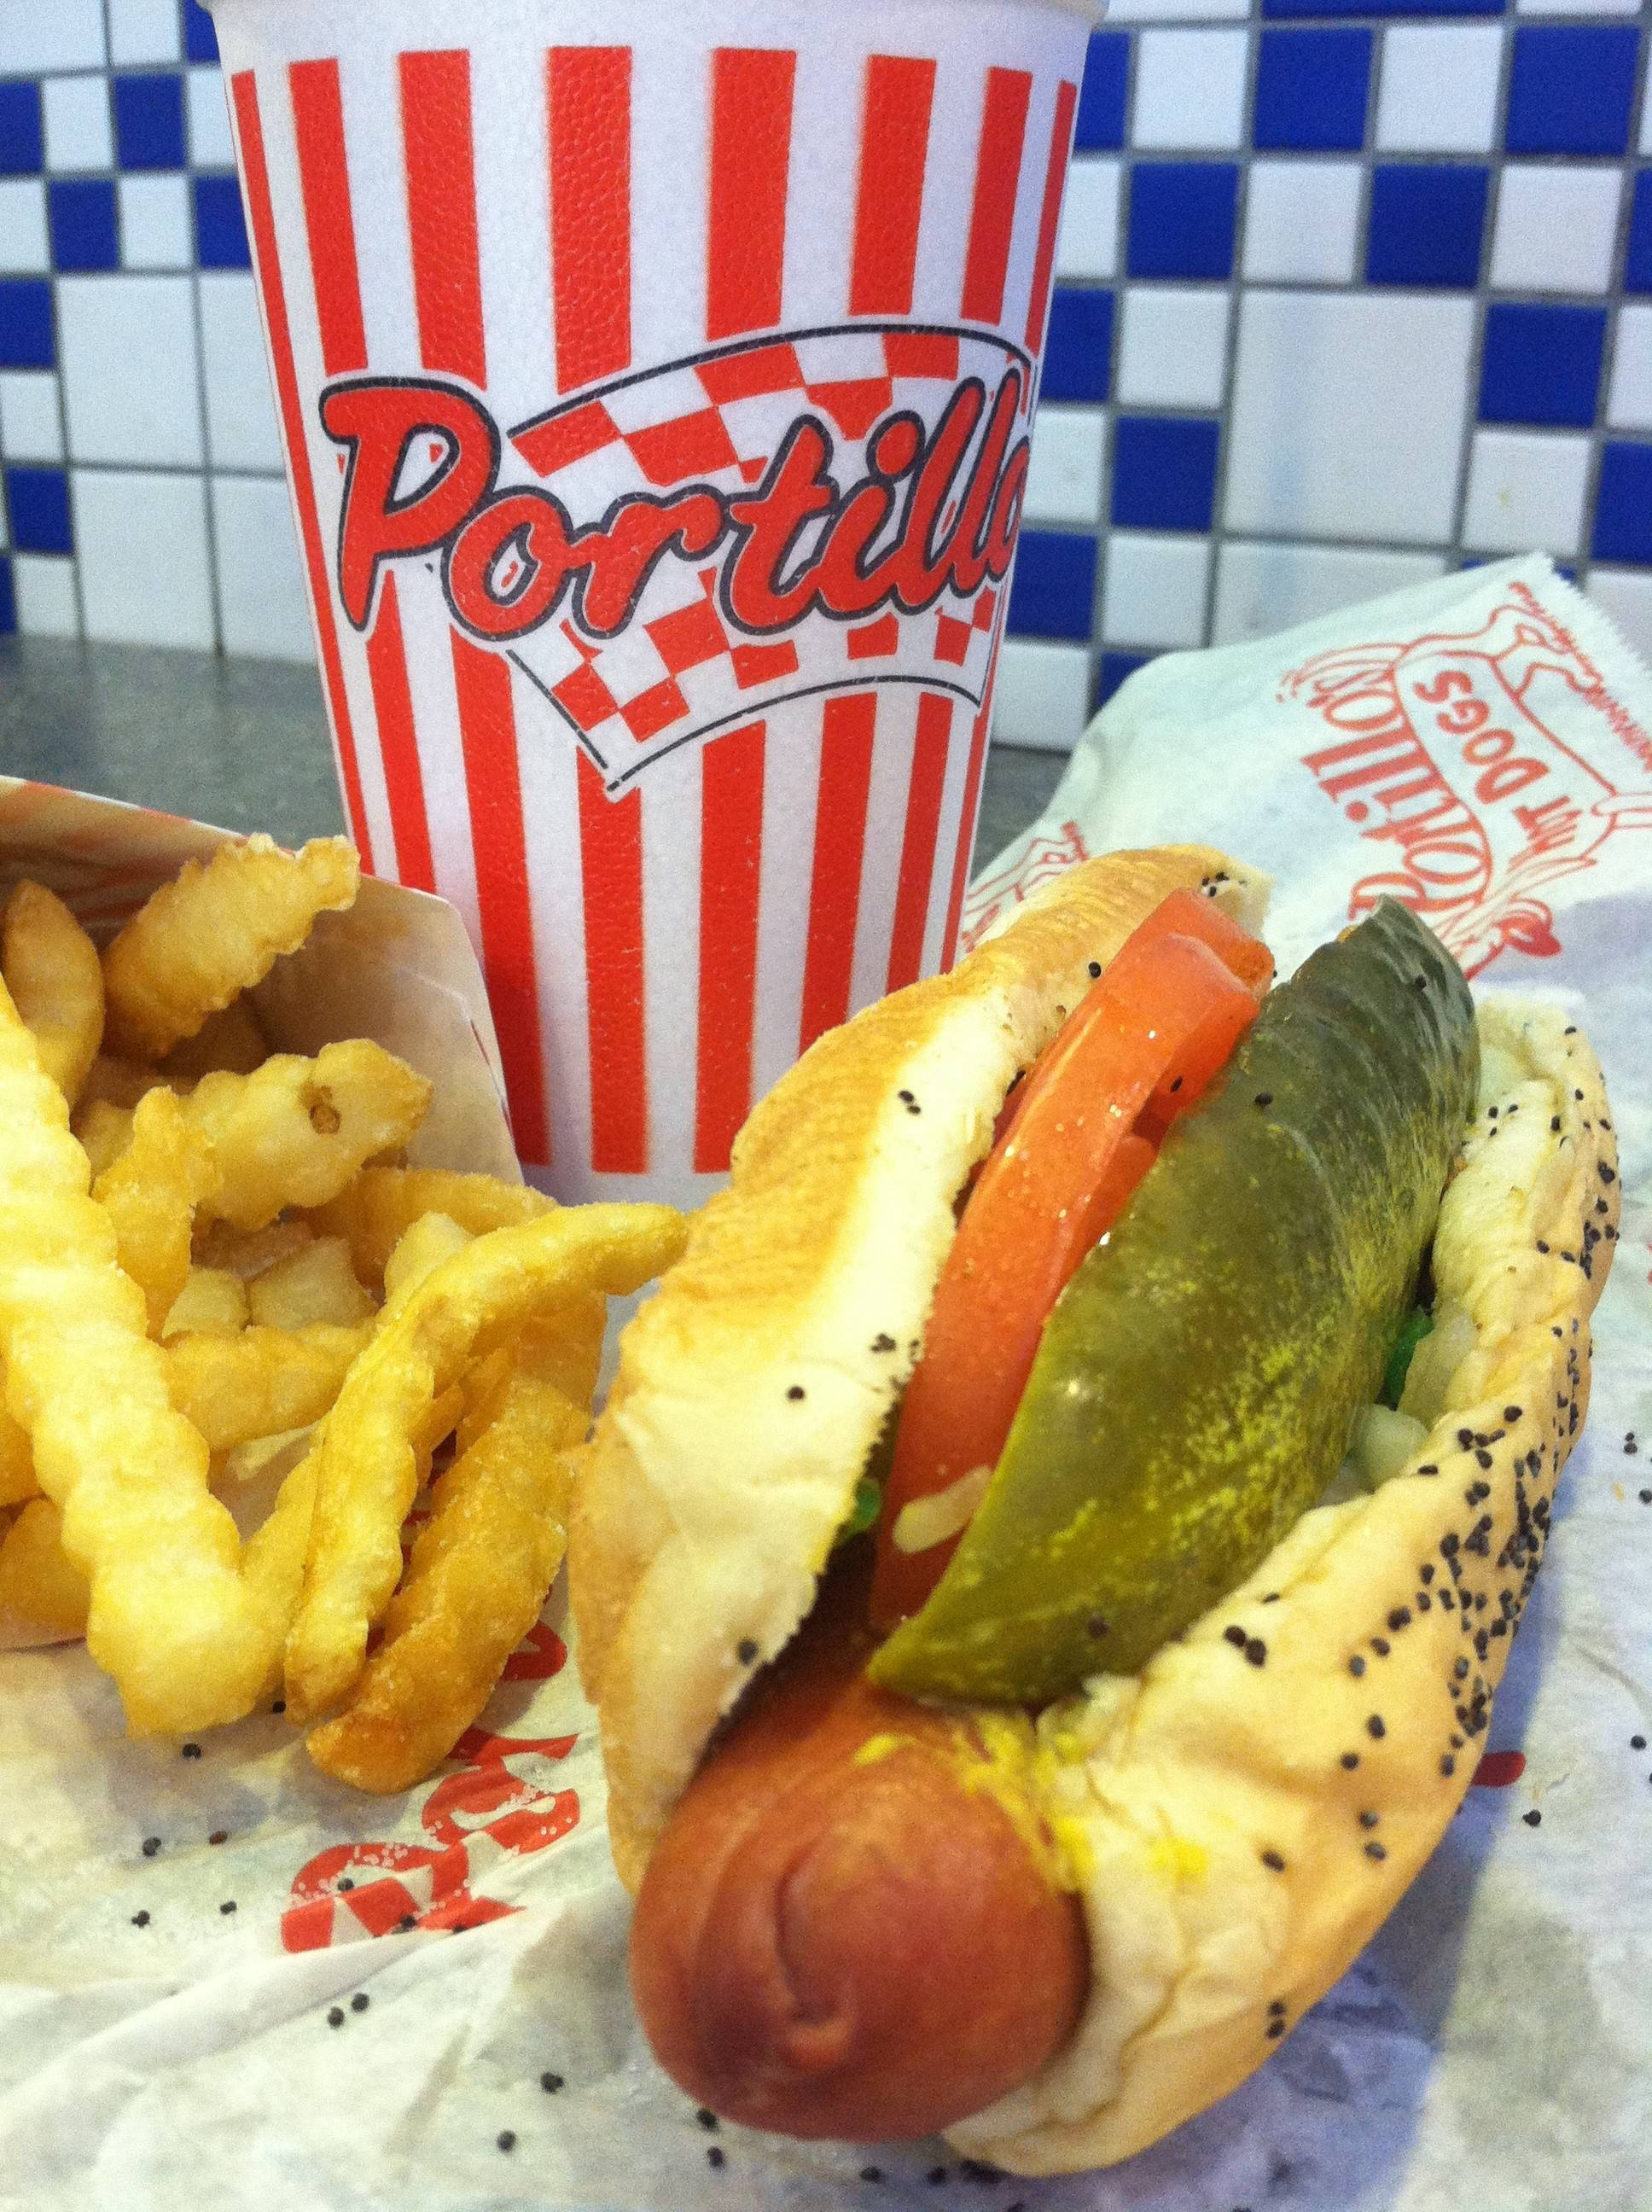 Portillo's hot dogs are among suburbanites' favorite dogs.